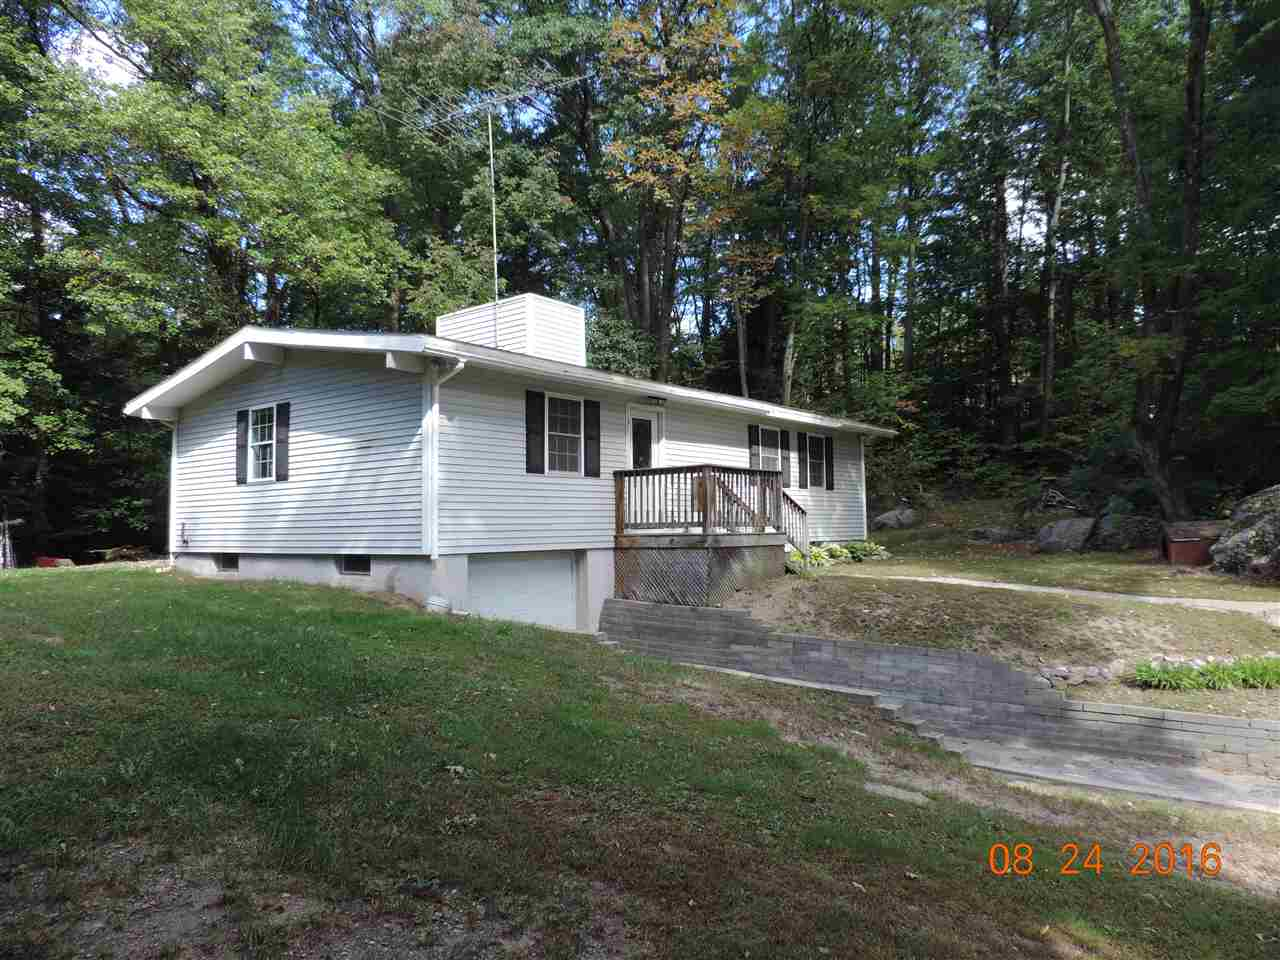 8 Kemp Road, Hillsborough, NH 03244